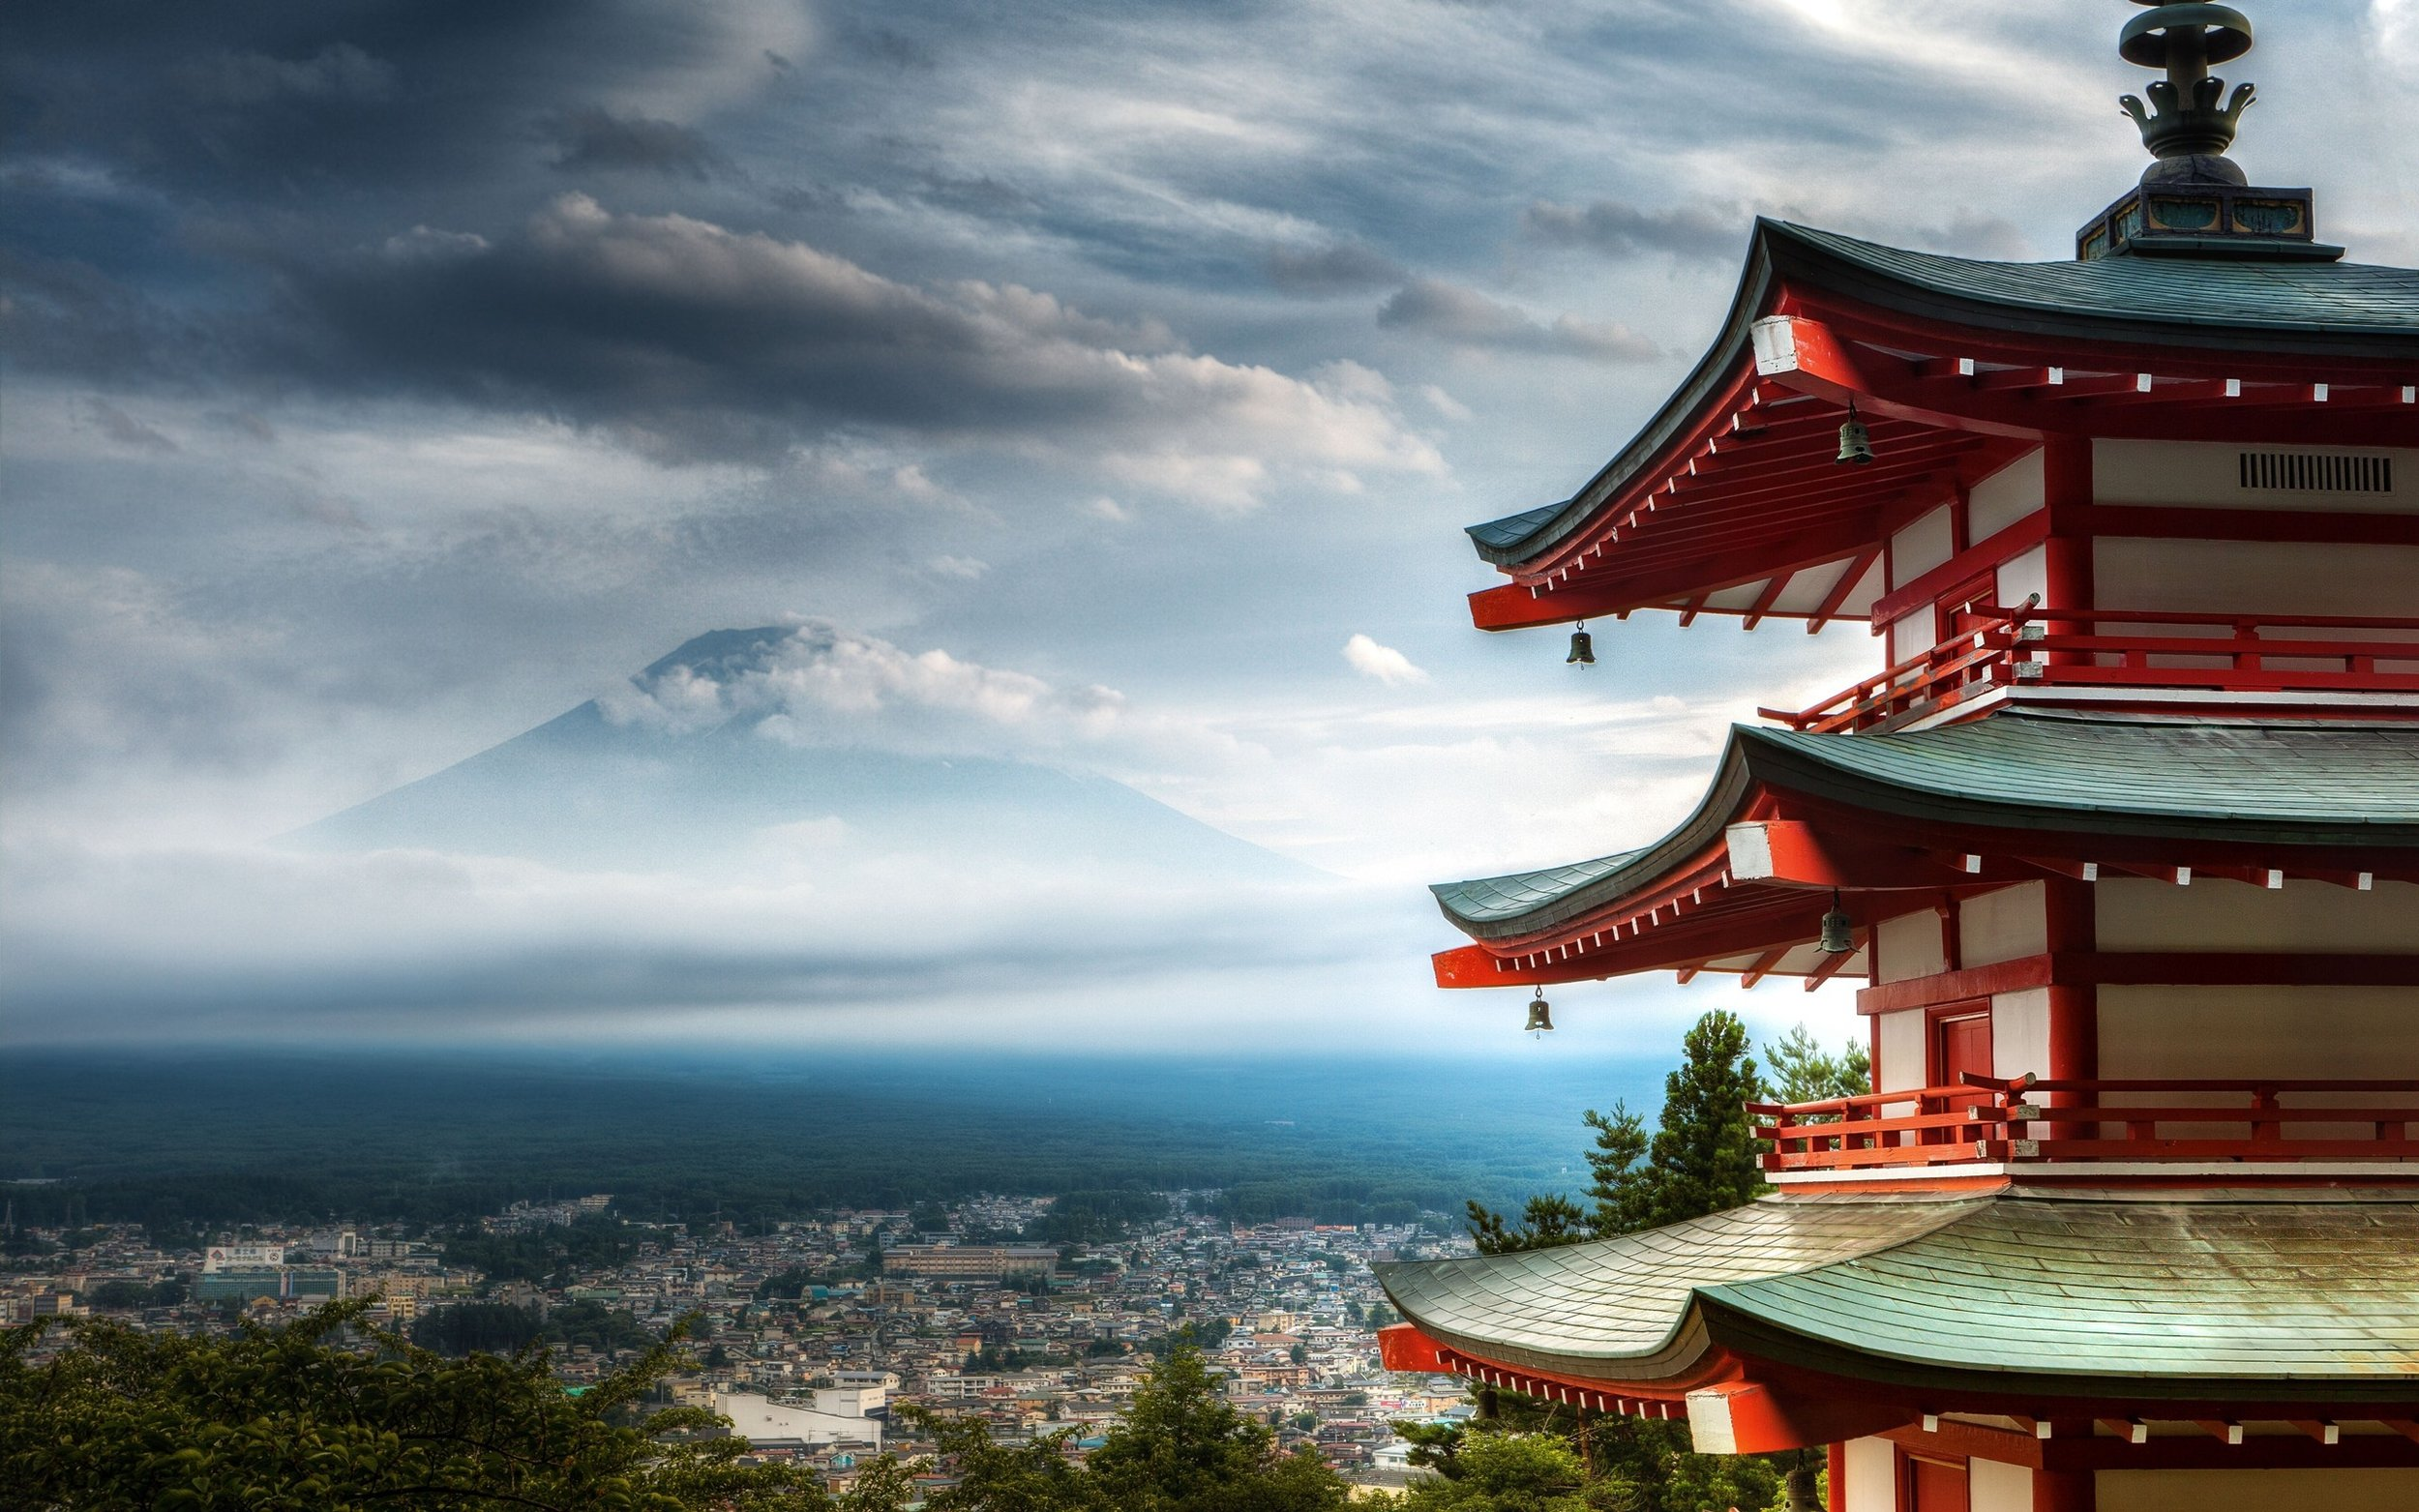 World___Japan_Pagoda_in_Japan_and_view_of_mount_Fuji_043934_.jpg